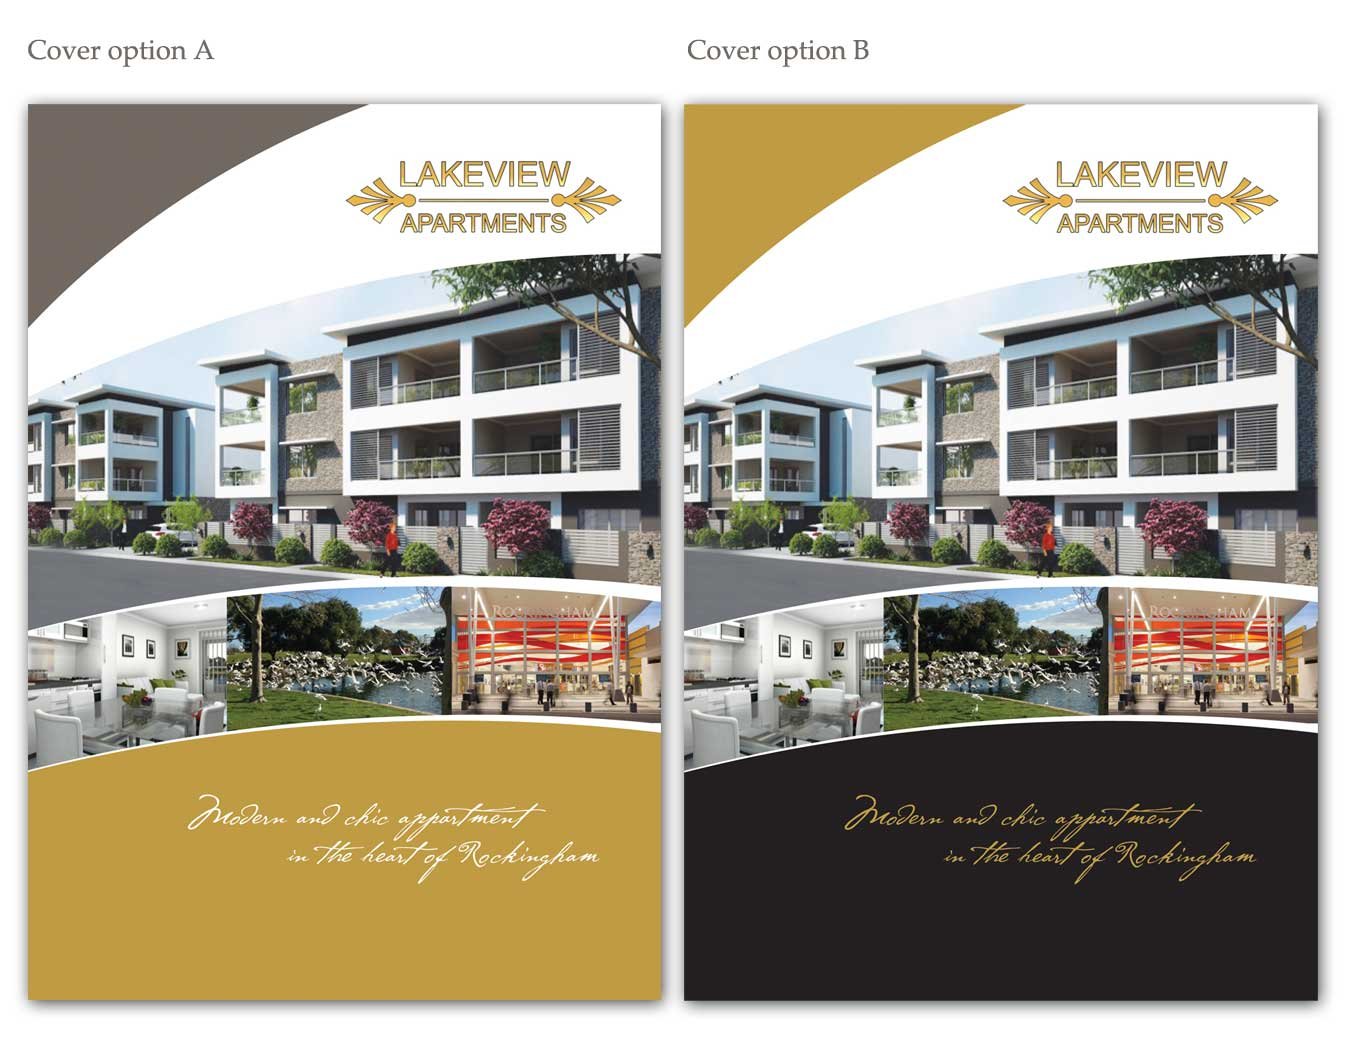 Apartment Brochure Design Elegant Colorful Brochure Design For Yaran Property Group.